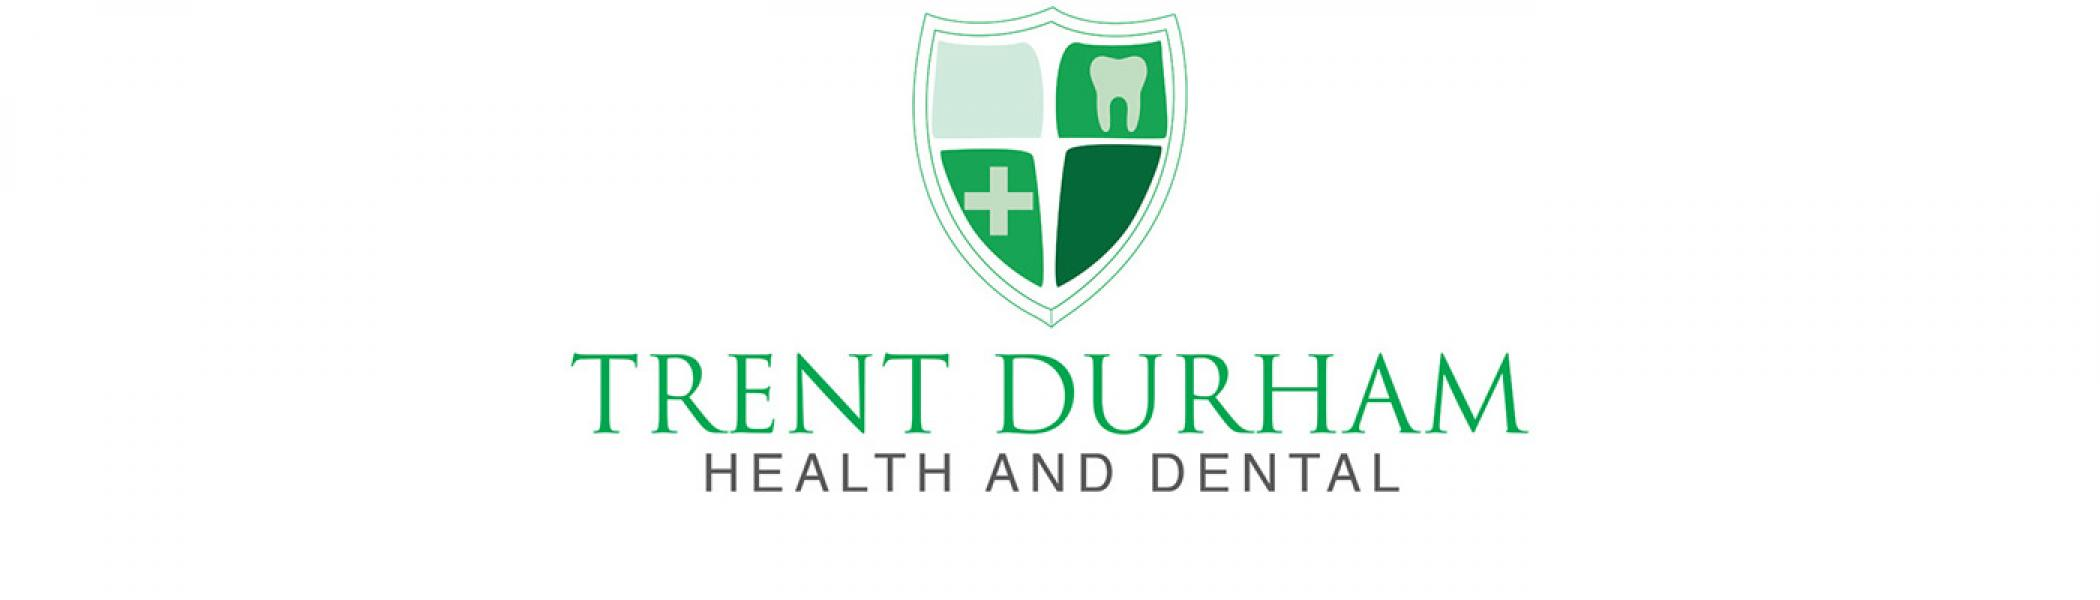 Trent Durham Health and Dental logo on the white background